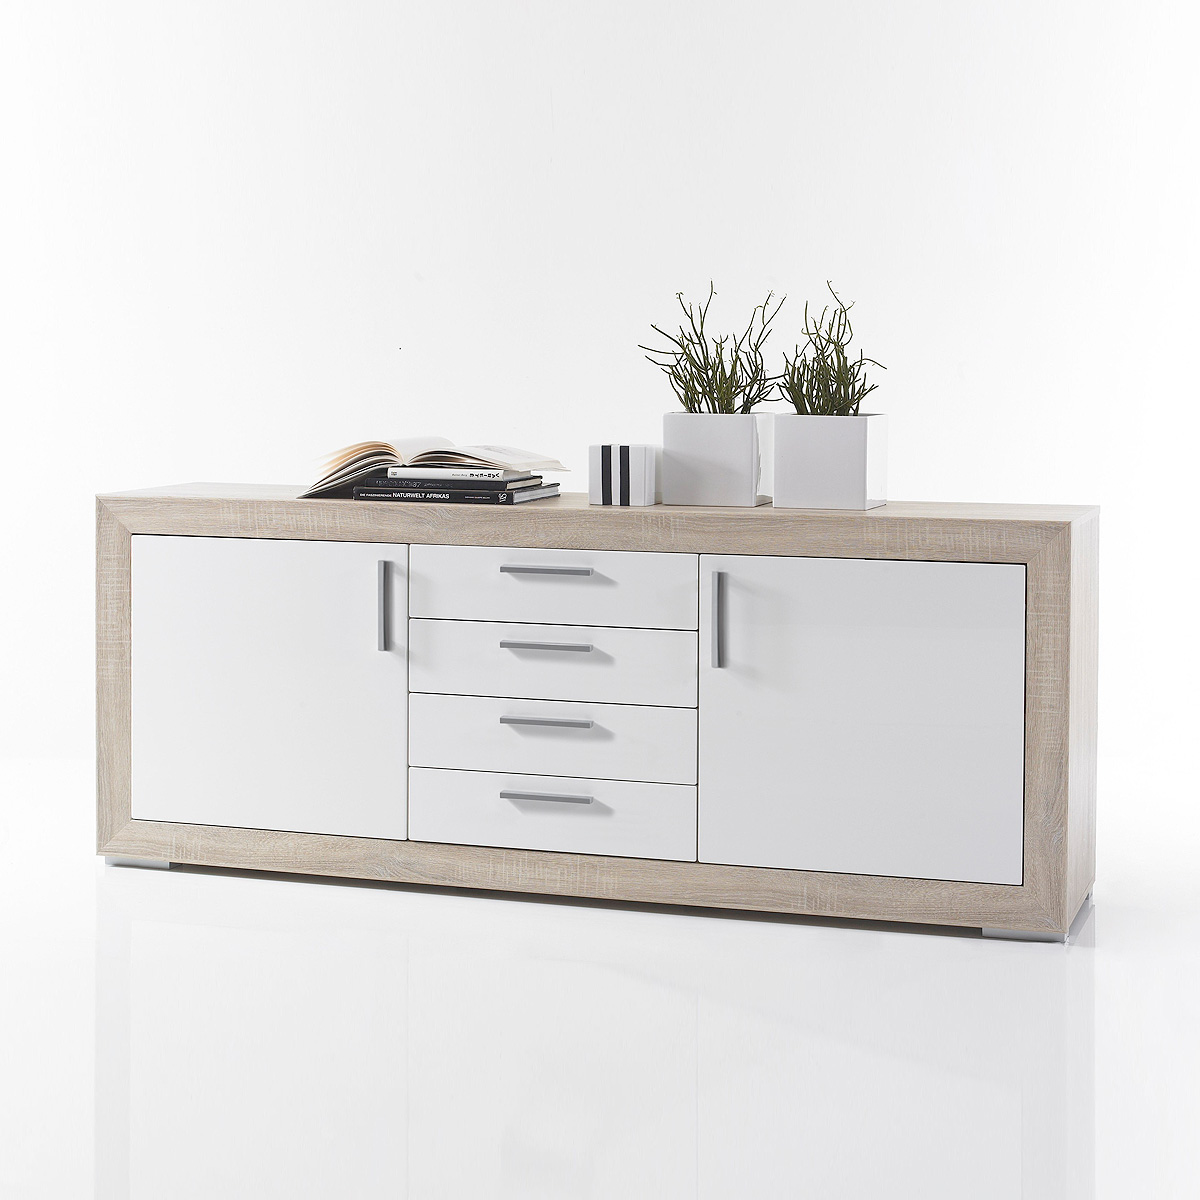 sideboard fernando kommode anrichte schrank sonoma eiche wei hochglanz ebay. Black Bedroom Furniture Sets. Home Design Ideas